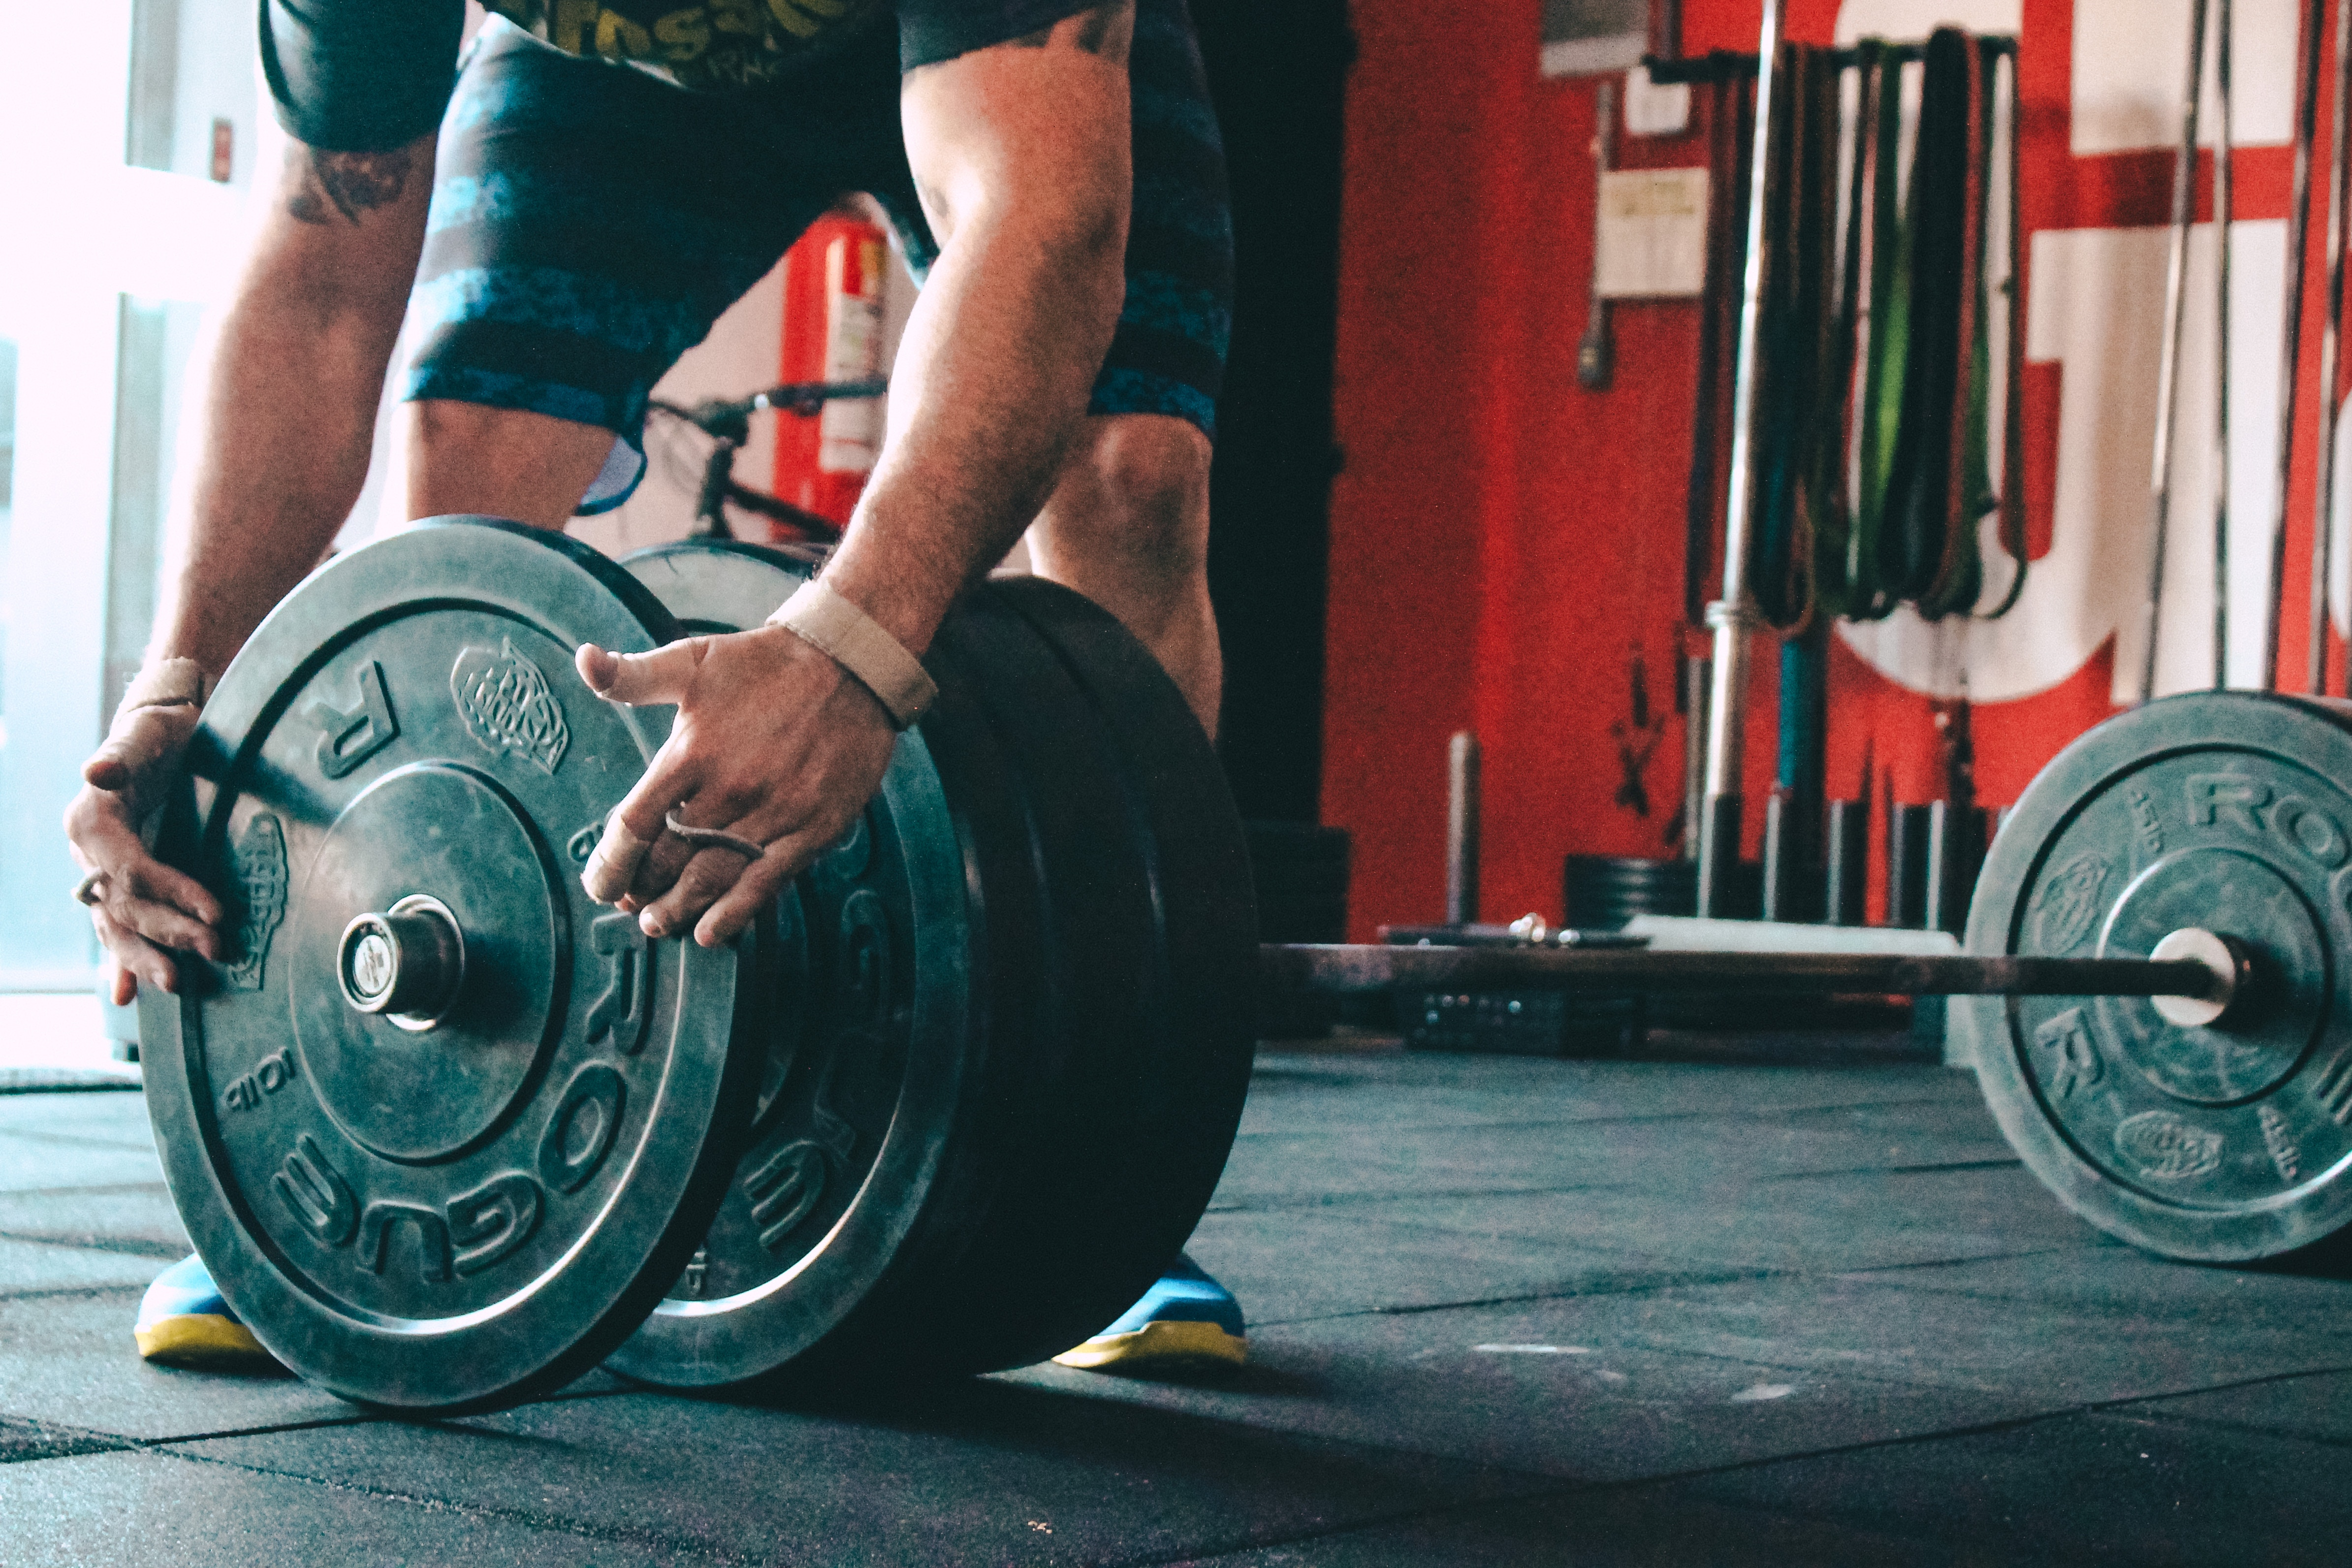 Bodybuilding Nutrition 101: The Ins and Outs of Bulking | Gazelle Nutrition  Lab